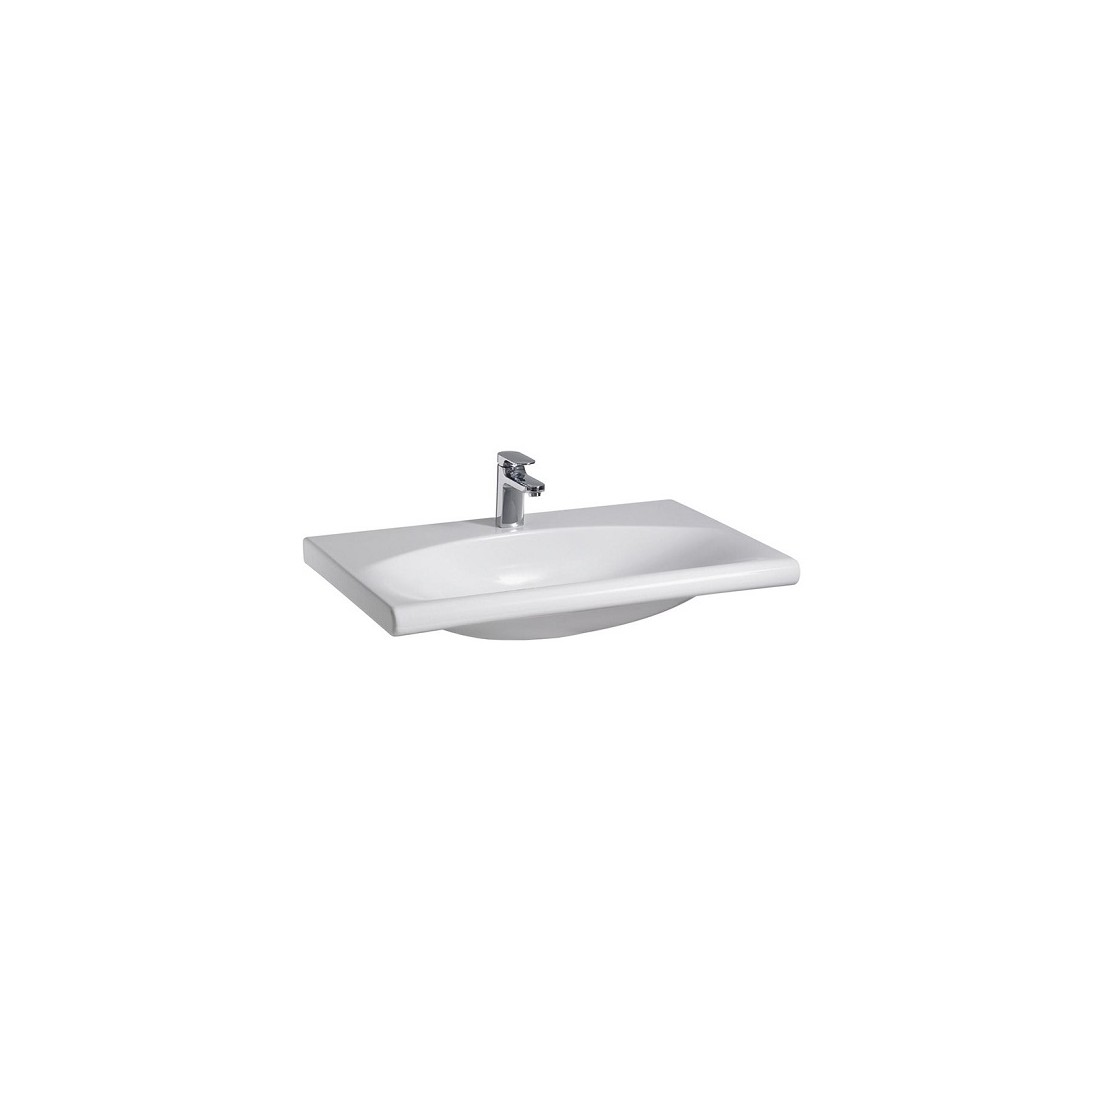 Praustuvas IDEAL STANDARD Daylight, 100 cm